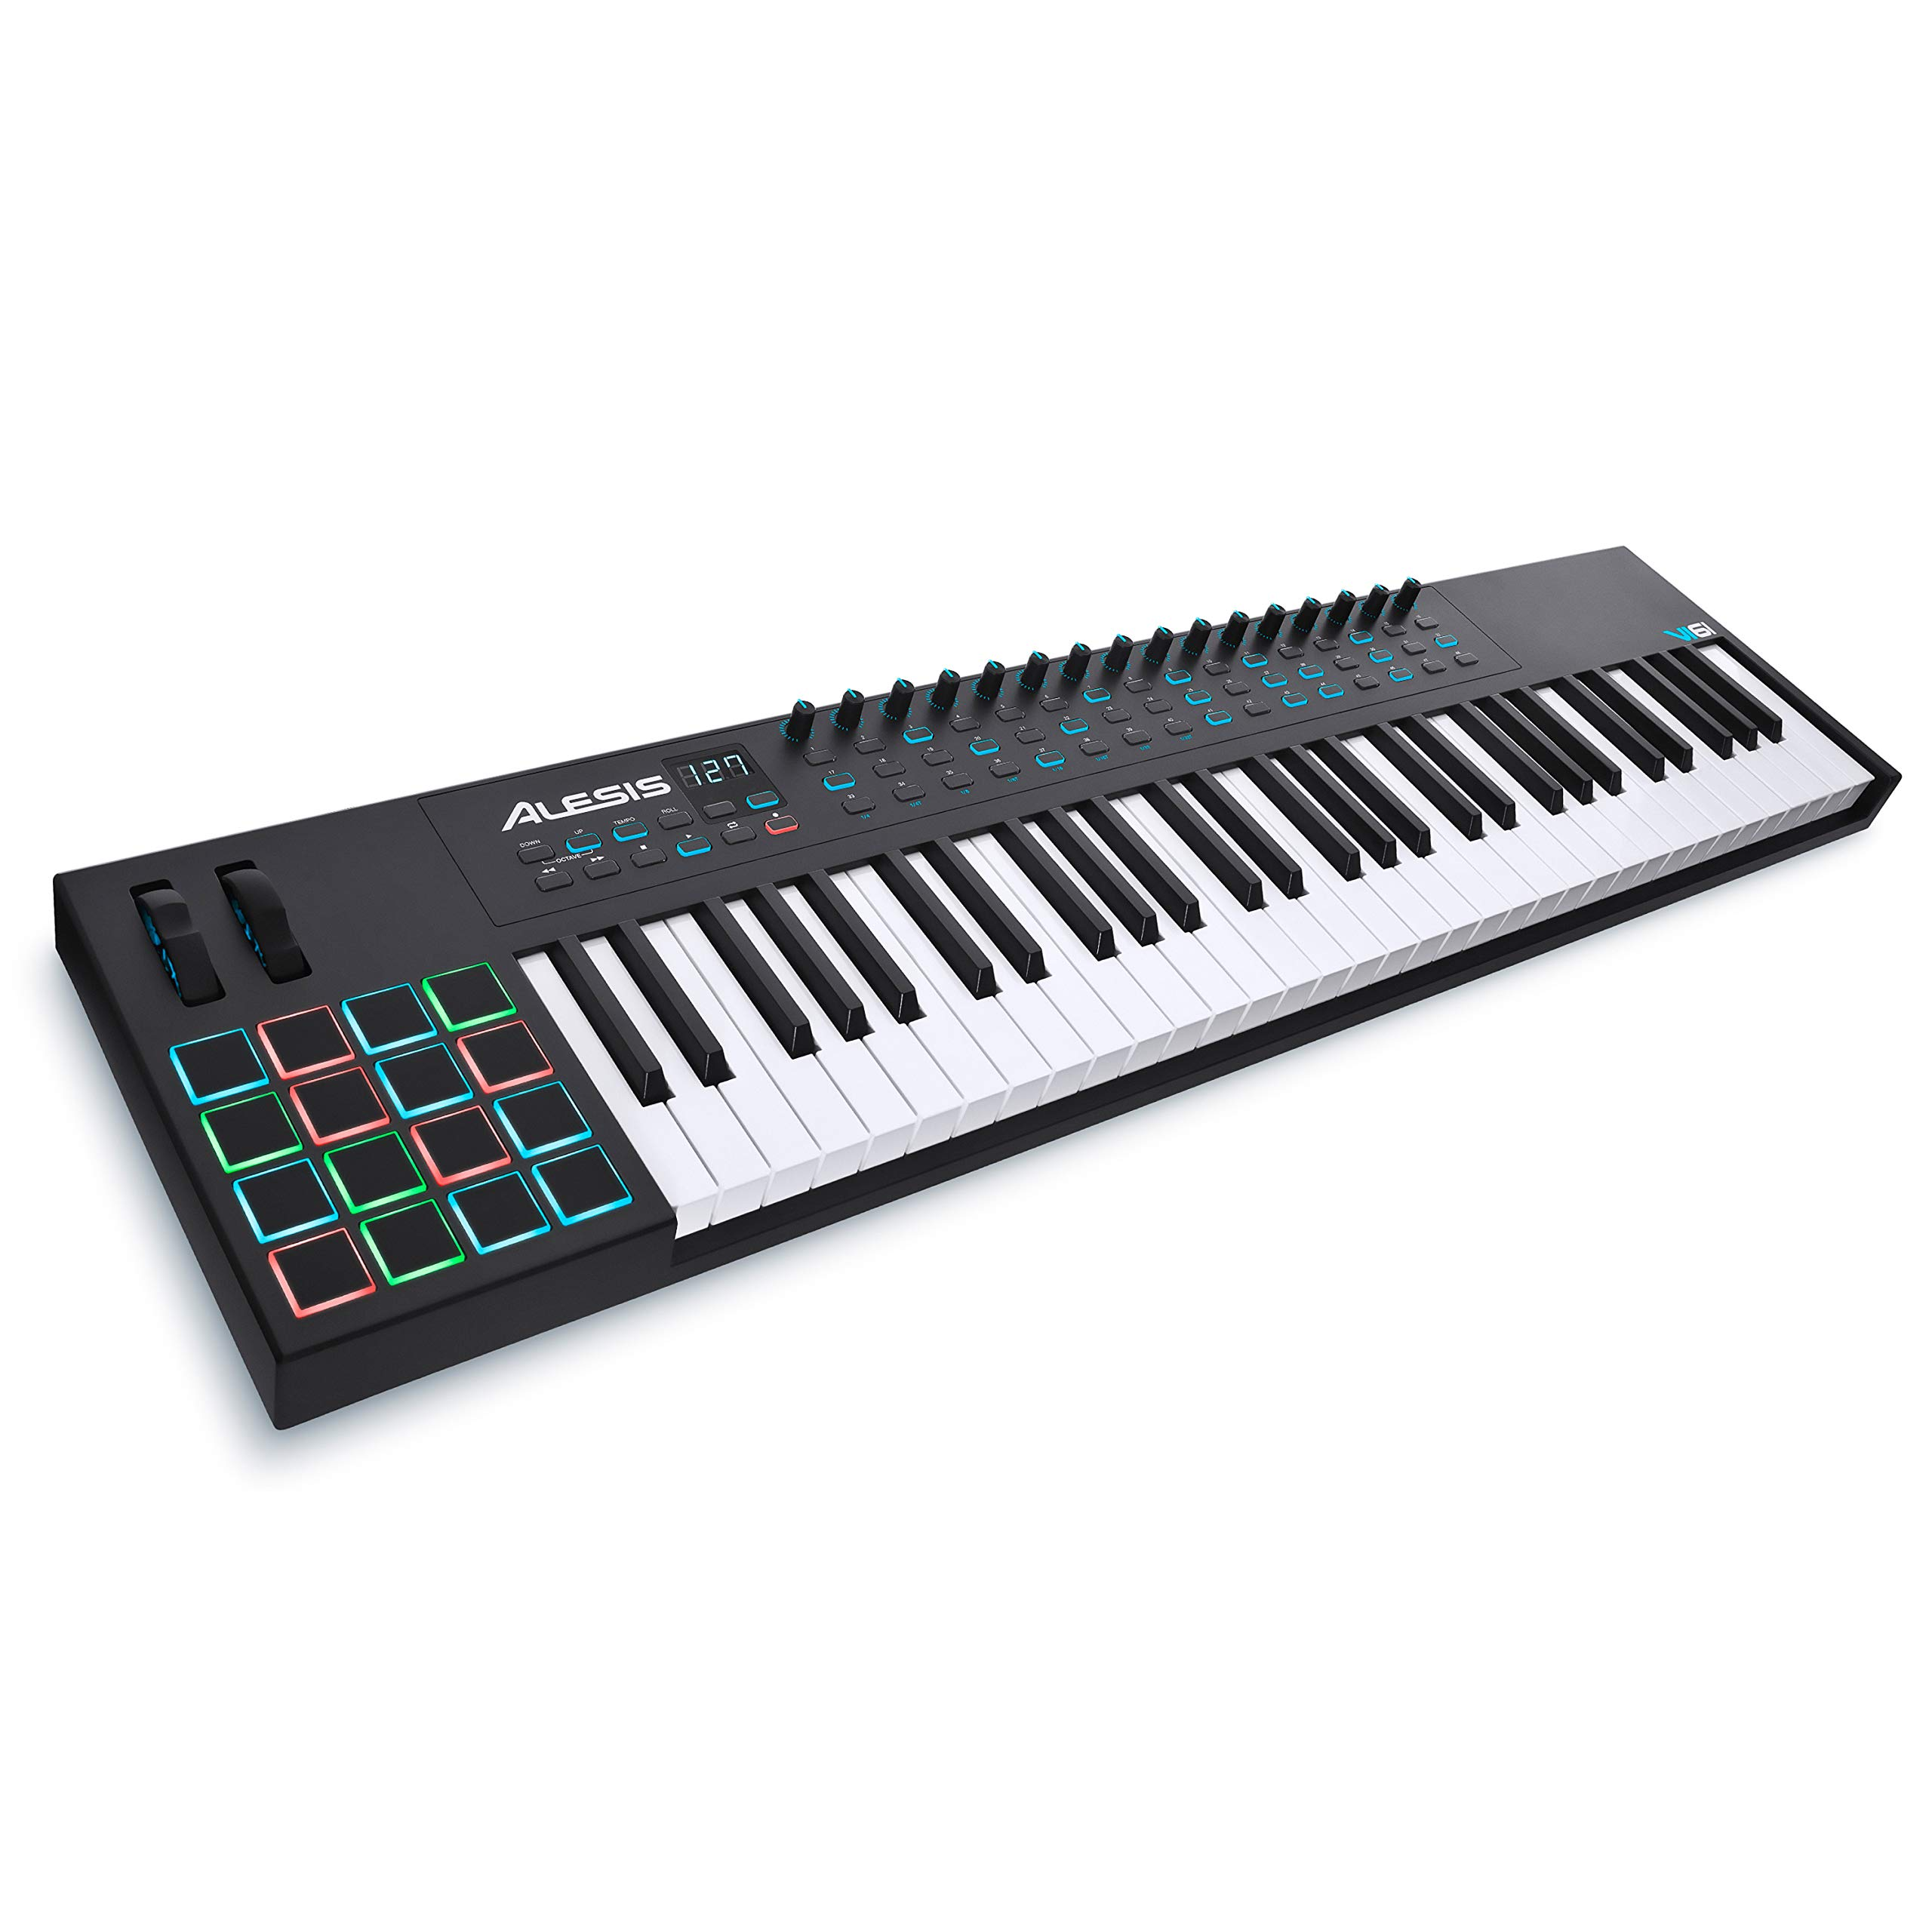 Alesis VI61 61-Key USB MIDI Keyboard Controller with 16 Pads, 16 Assignable Knobs, 48 Buttons and 5-Pin MIDI Out Plus Production Software Included by Alesis